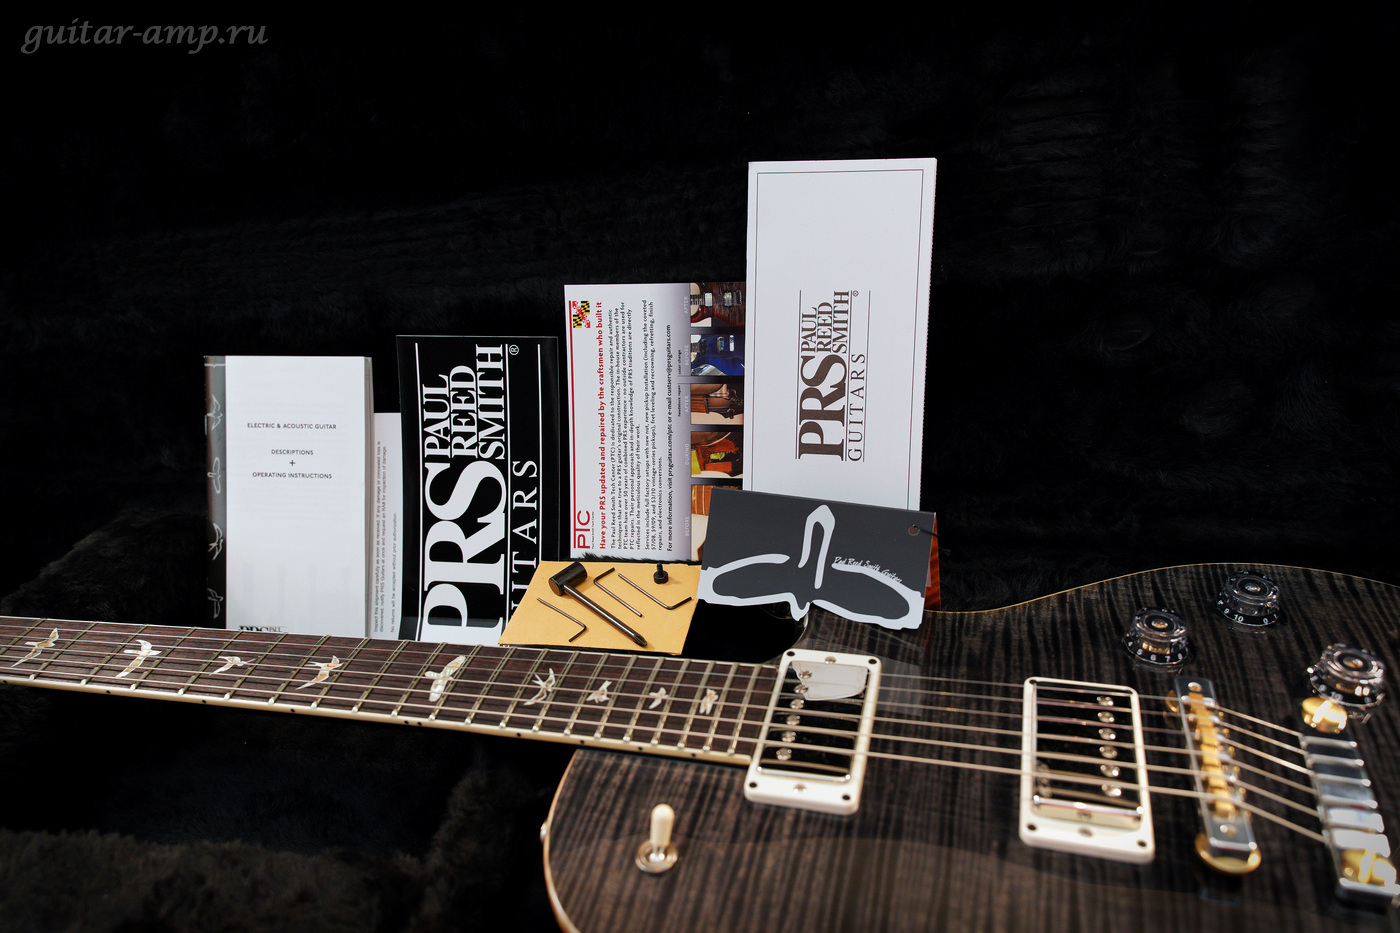 PRS SC245 Charcoal Grey Black 10 Top 2015 02_garx1400.jpg